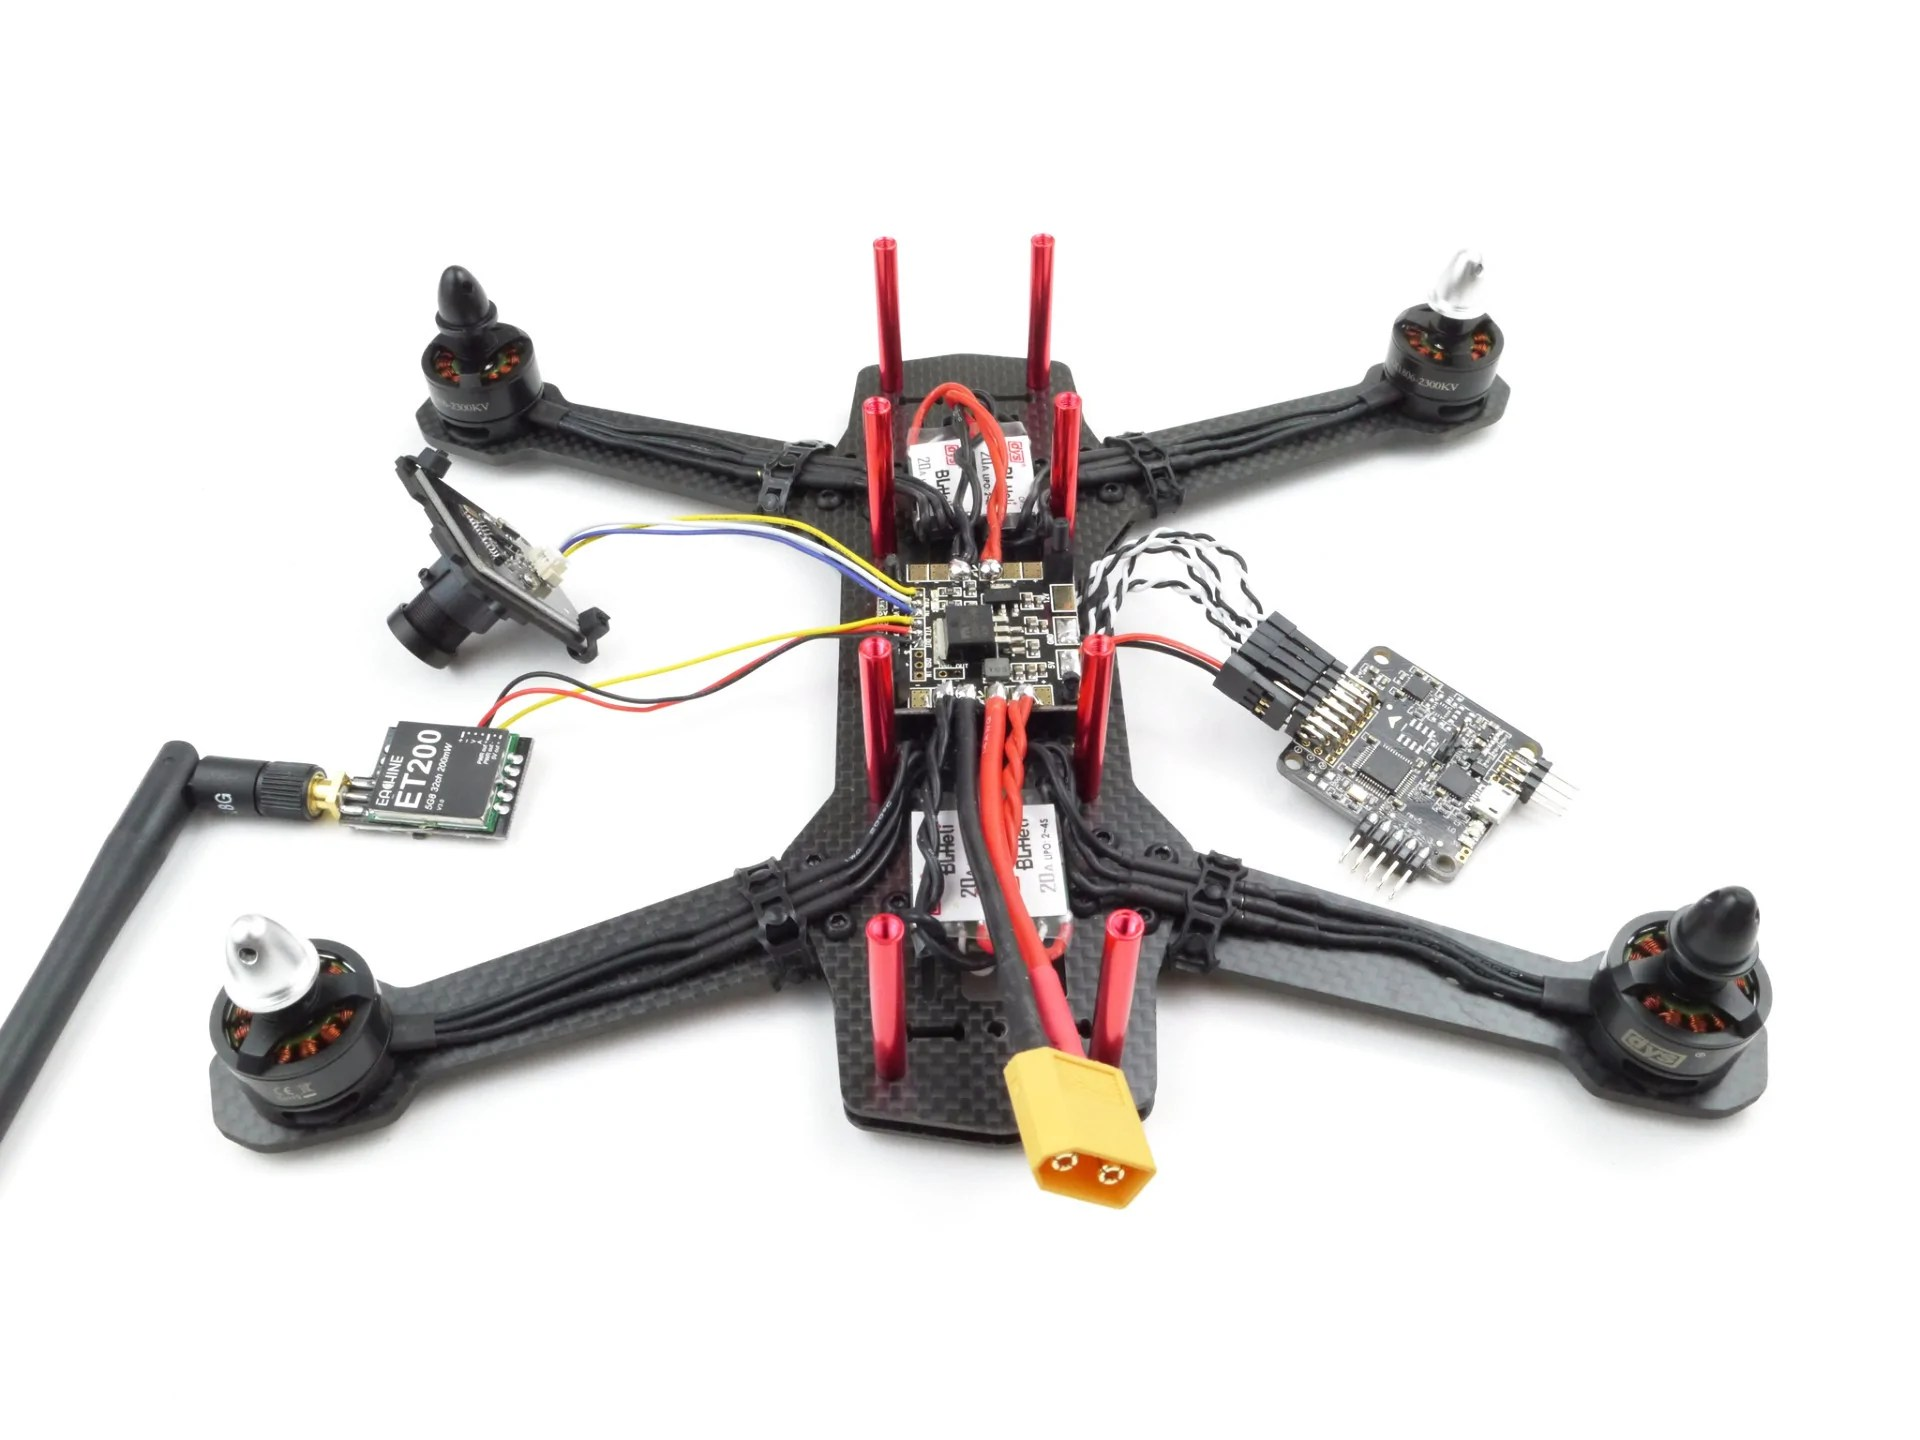 Buy The Most Affordable FPV Racing Mini Quadcopter Kit